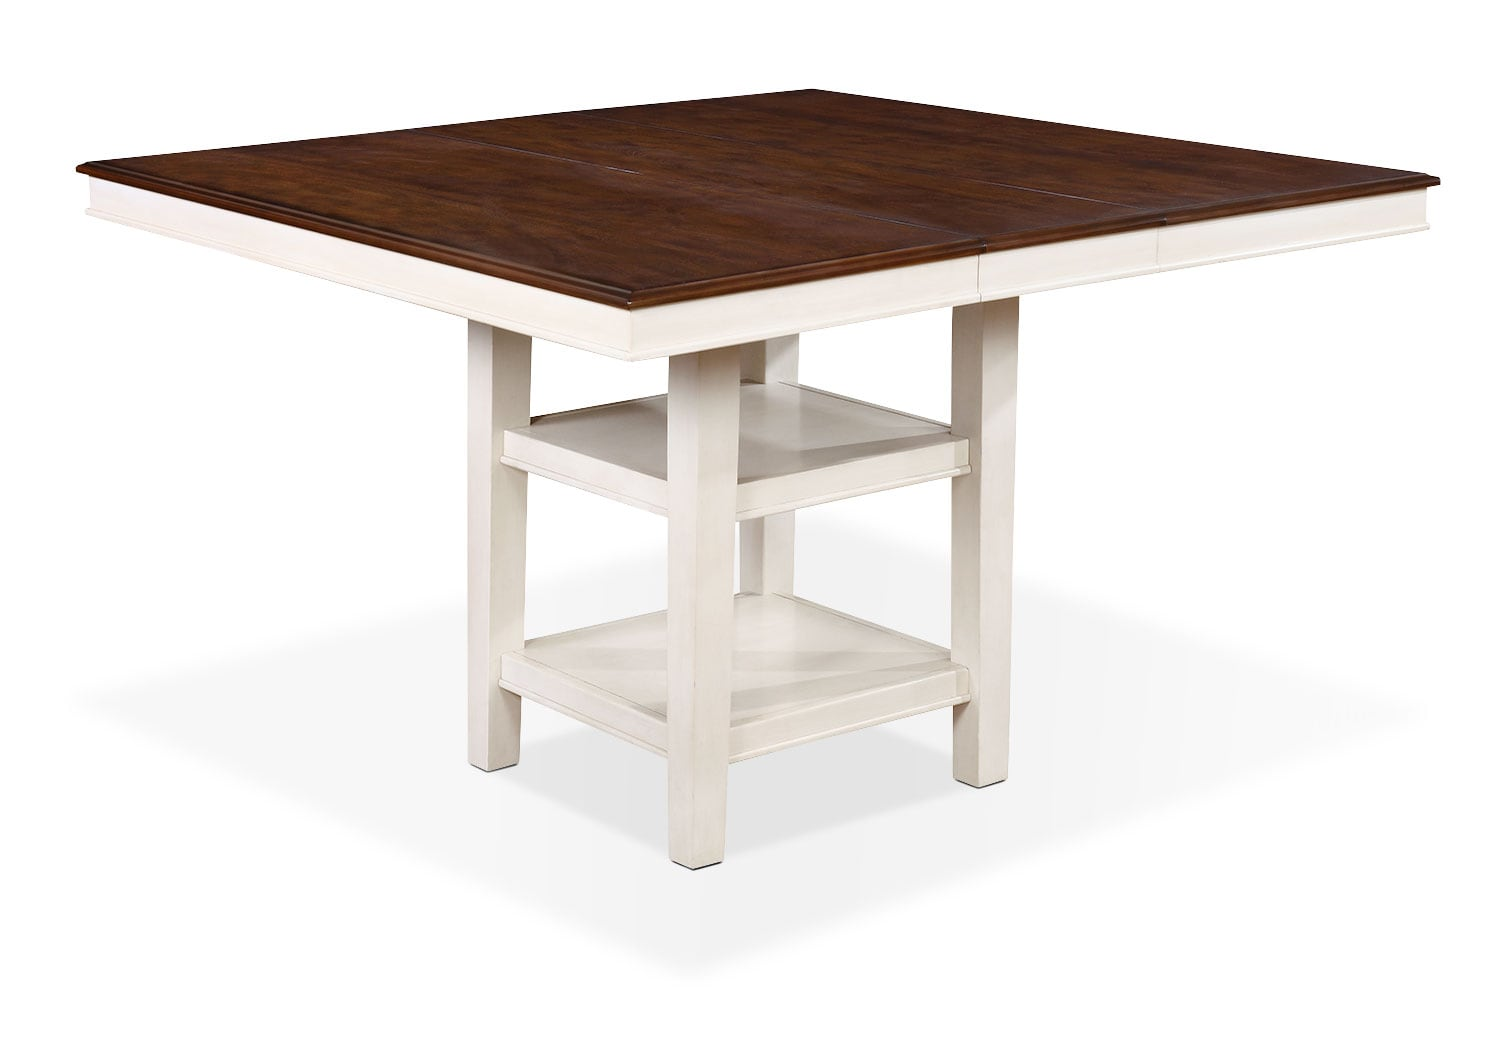 Dining Room Furniture - Nyla Counter-Height Dining Table – Antique White and Cherry